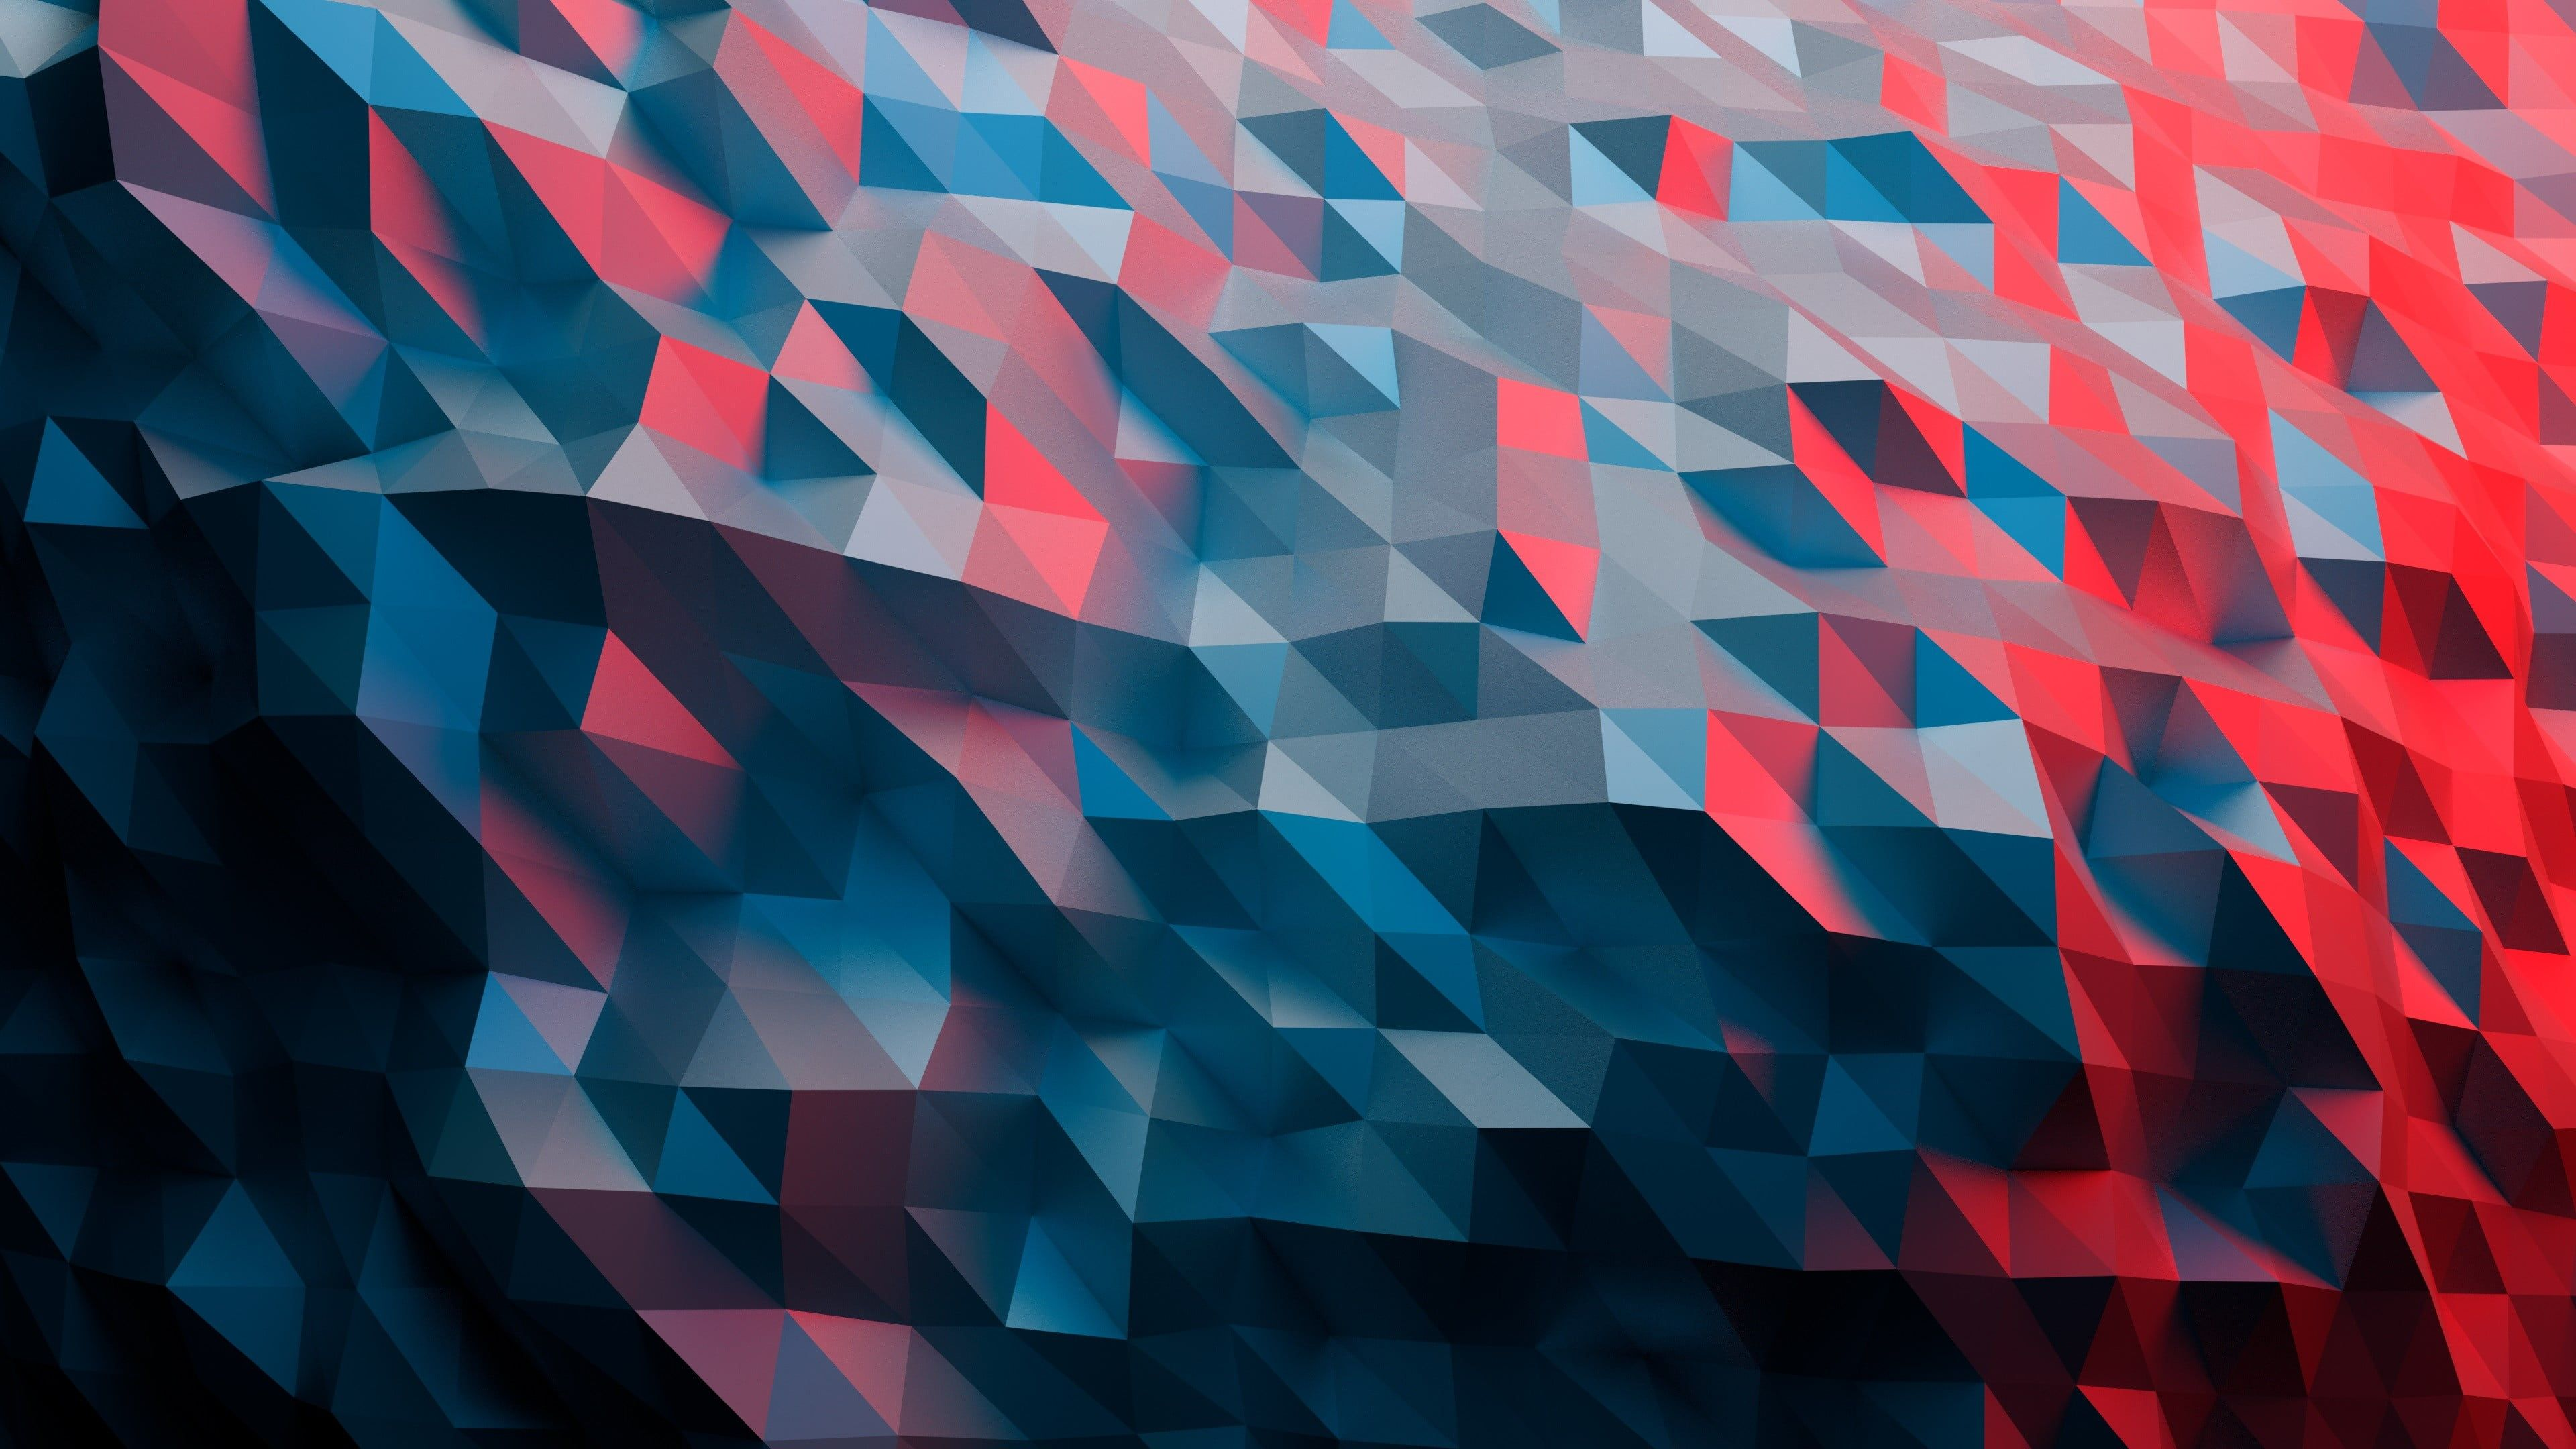 Red Black And Blue Abstract Painting Low Poly Abstract 4k Wallpaper Hdwallpaper Desktop Abstract Wallpaper Abstract 3840x2160 Wallpaper